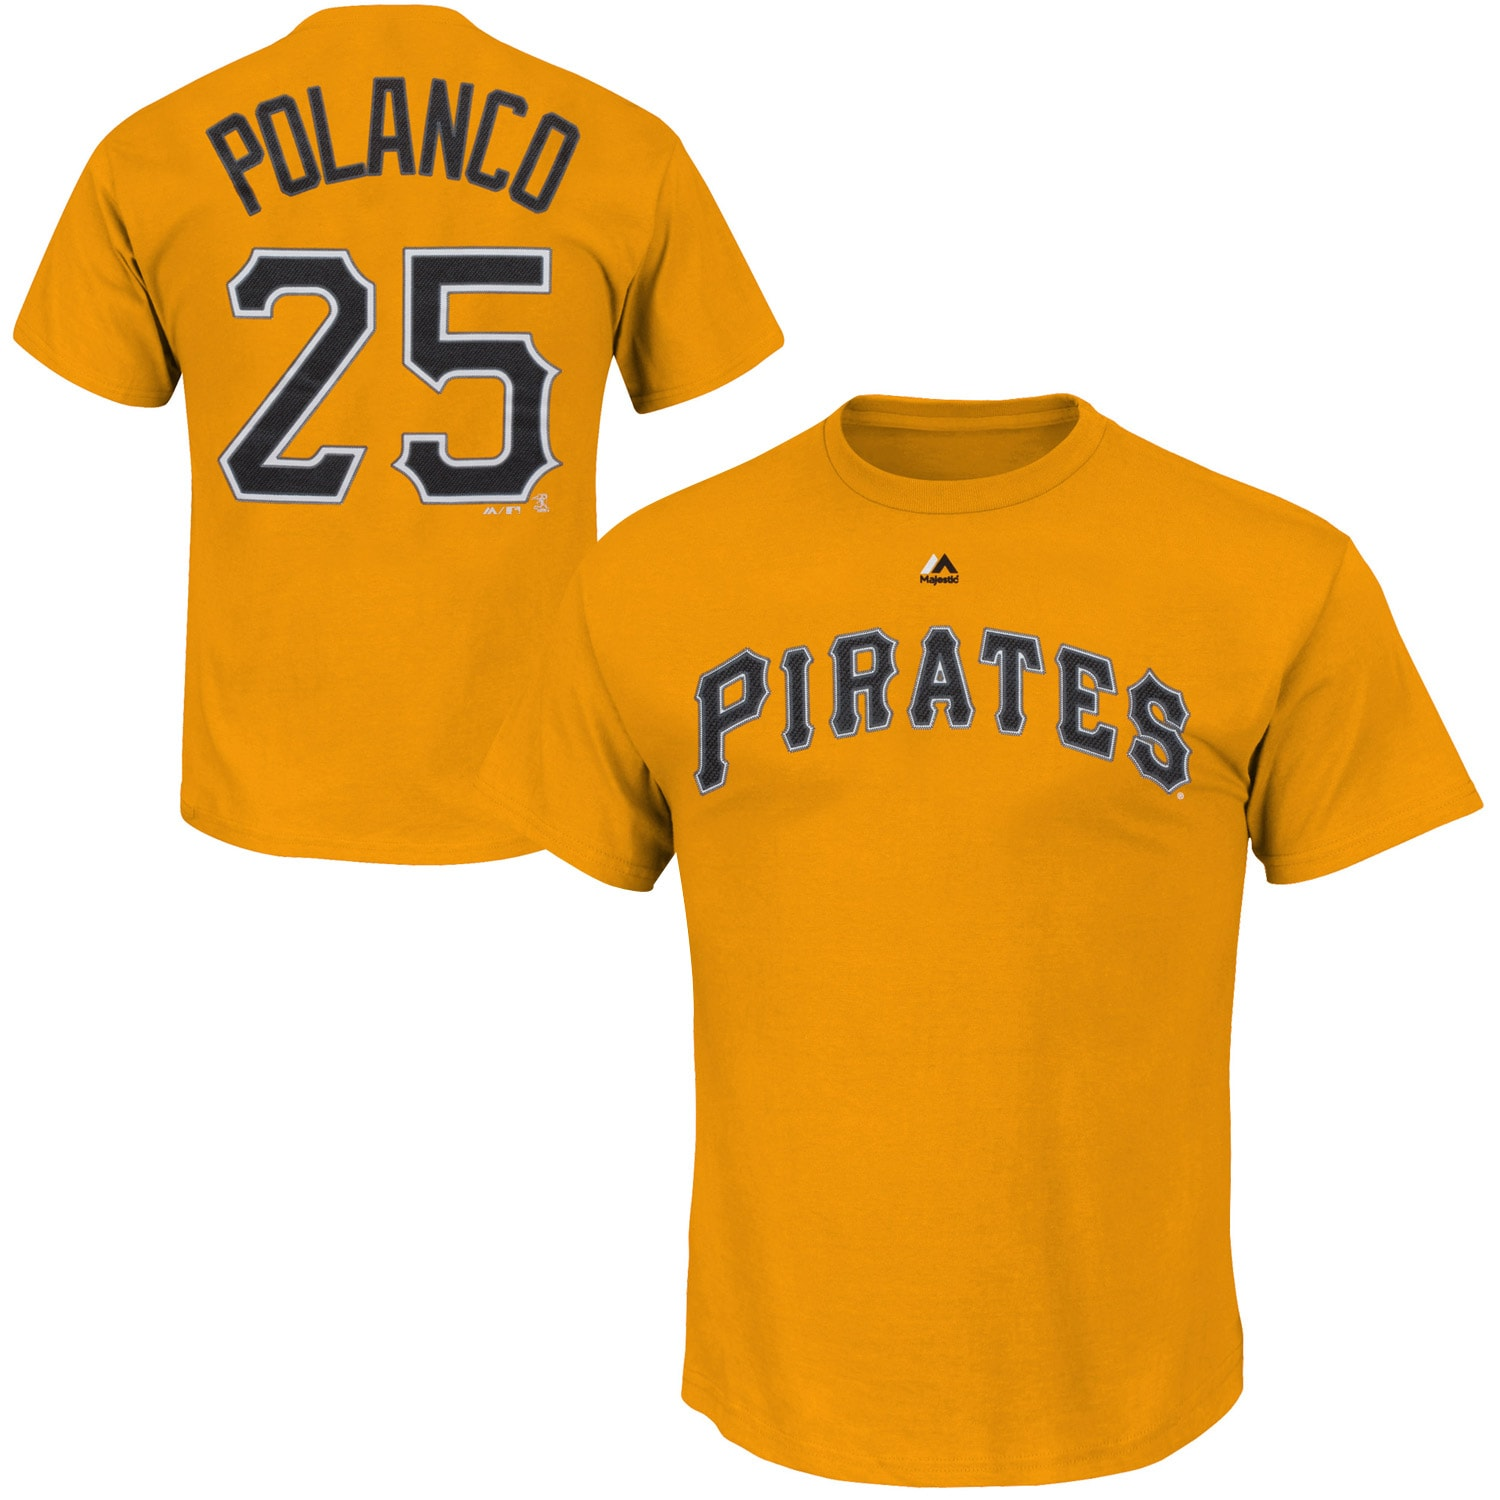 Gregory Polanco Pittsburgh Pirates Majestic Official Name and Number T-Shirt - Gold